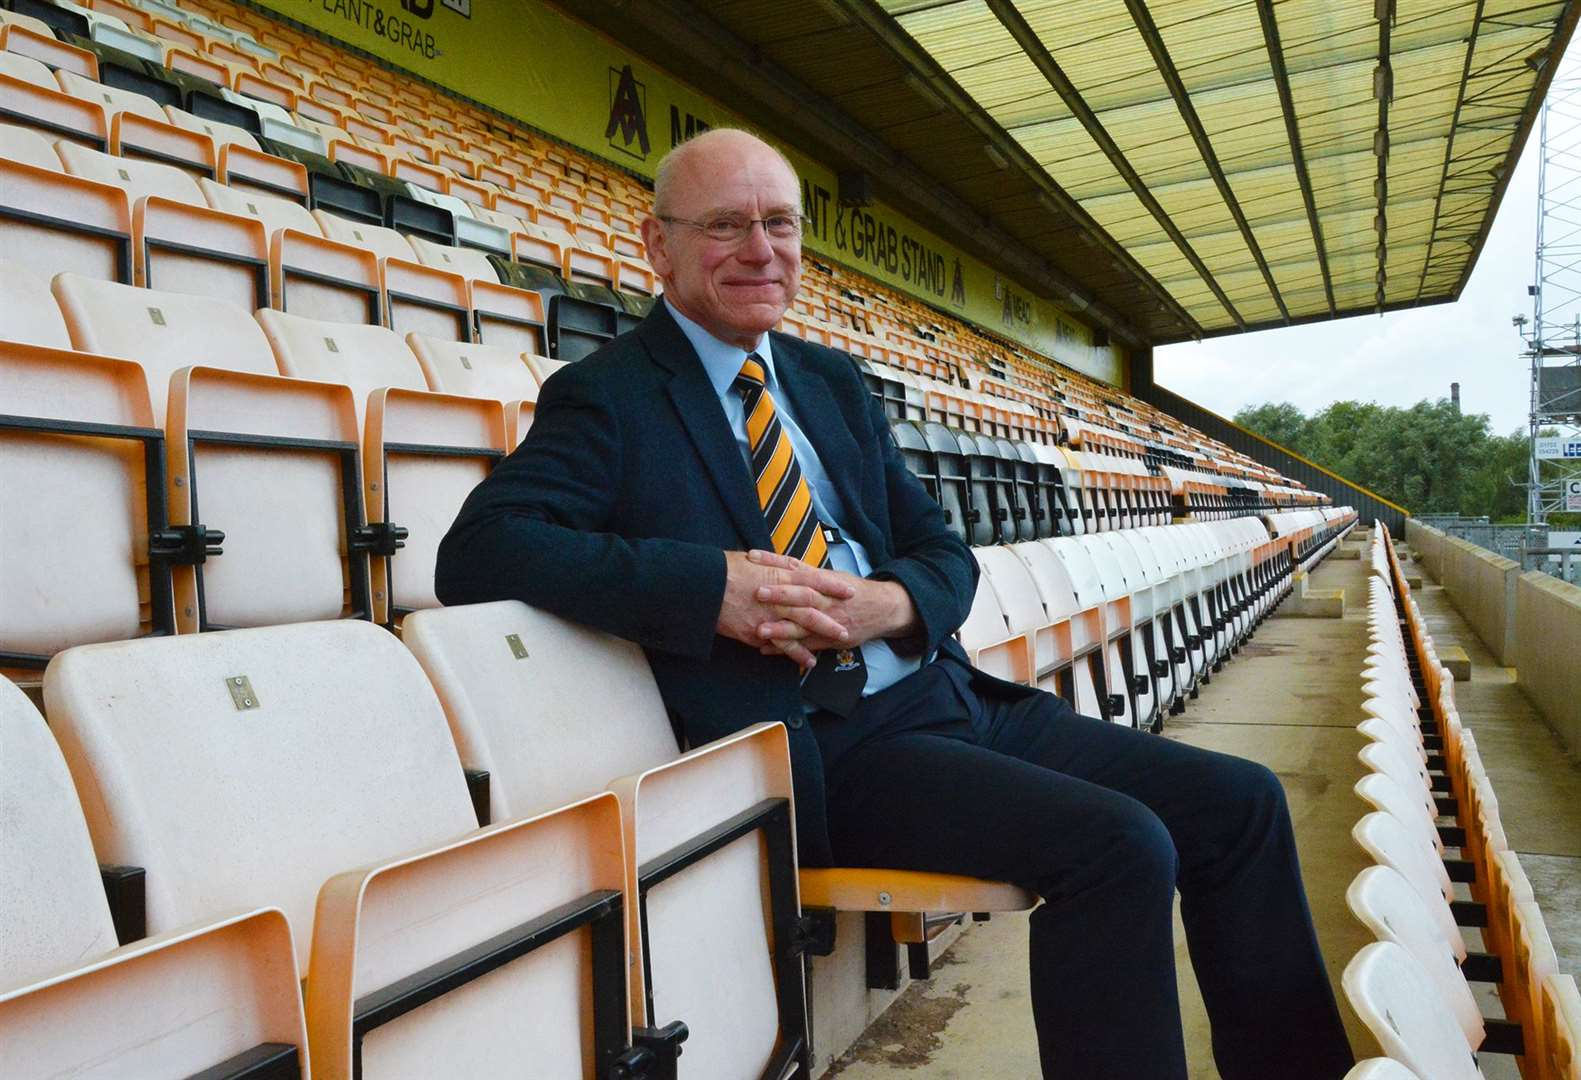 Cambridge United CEO Ian Mather. Picture: Cambridge United